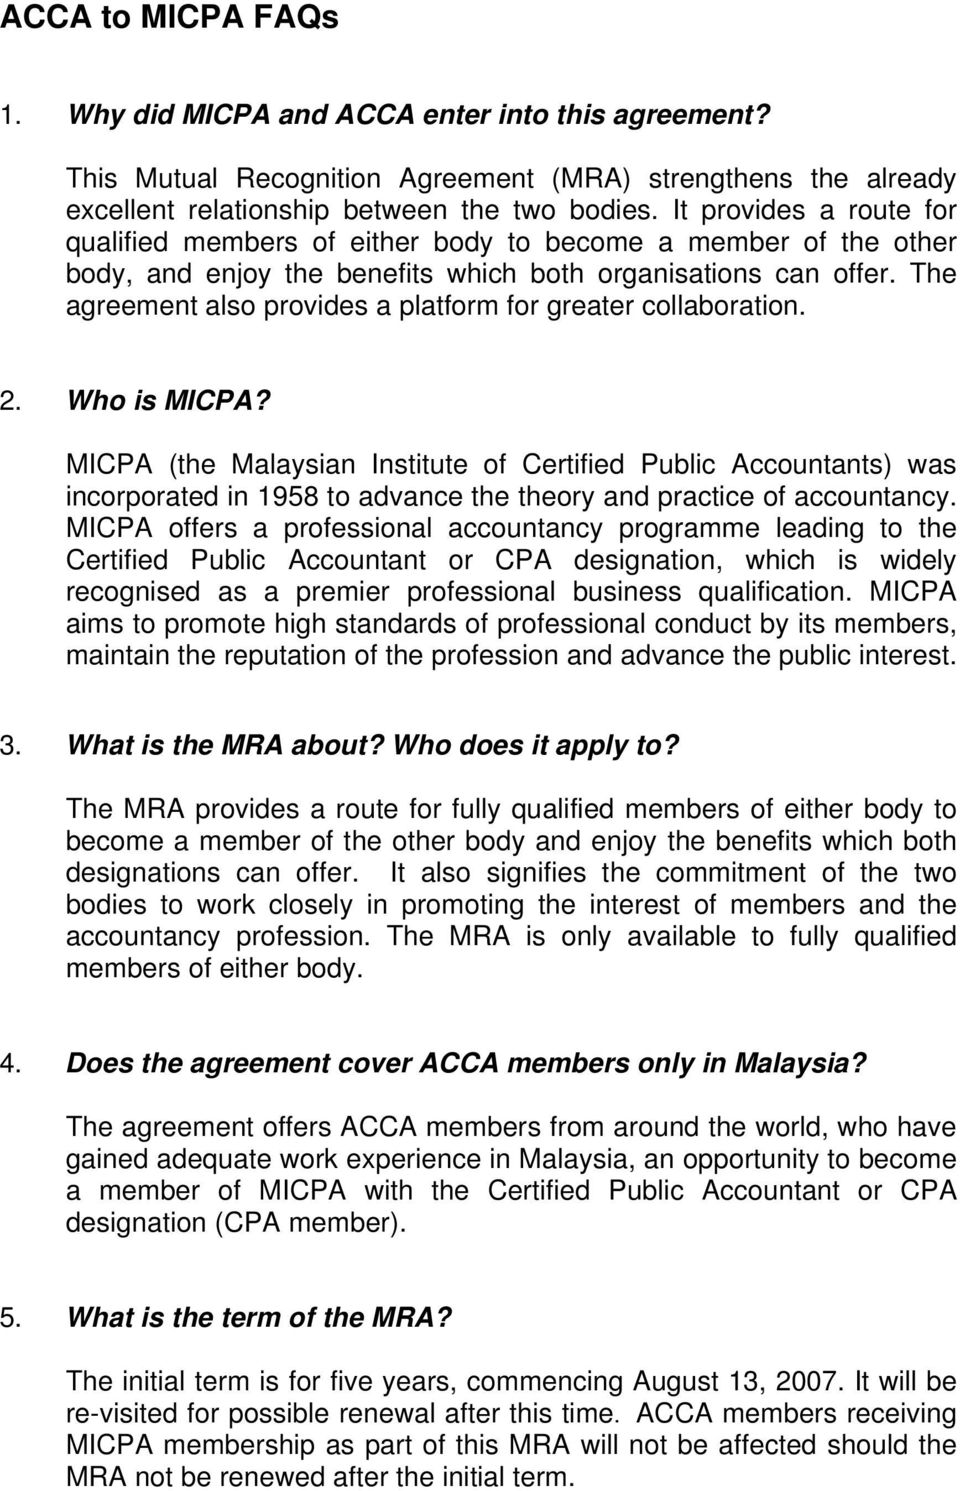 The agreement also provides a platform for greater collaboration. 2. Who is MICPA?